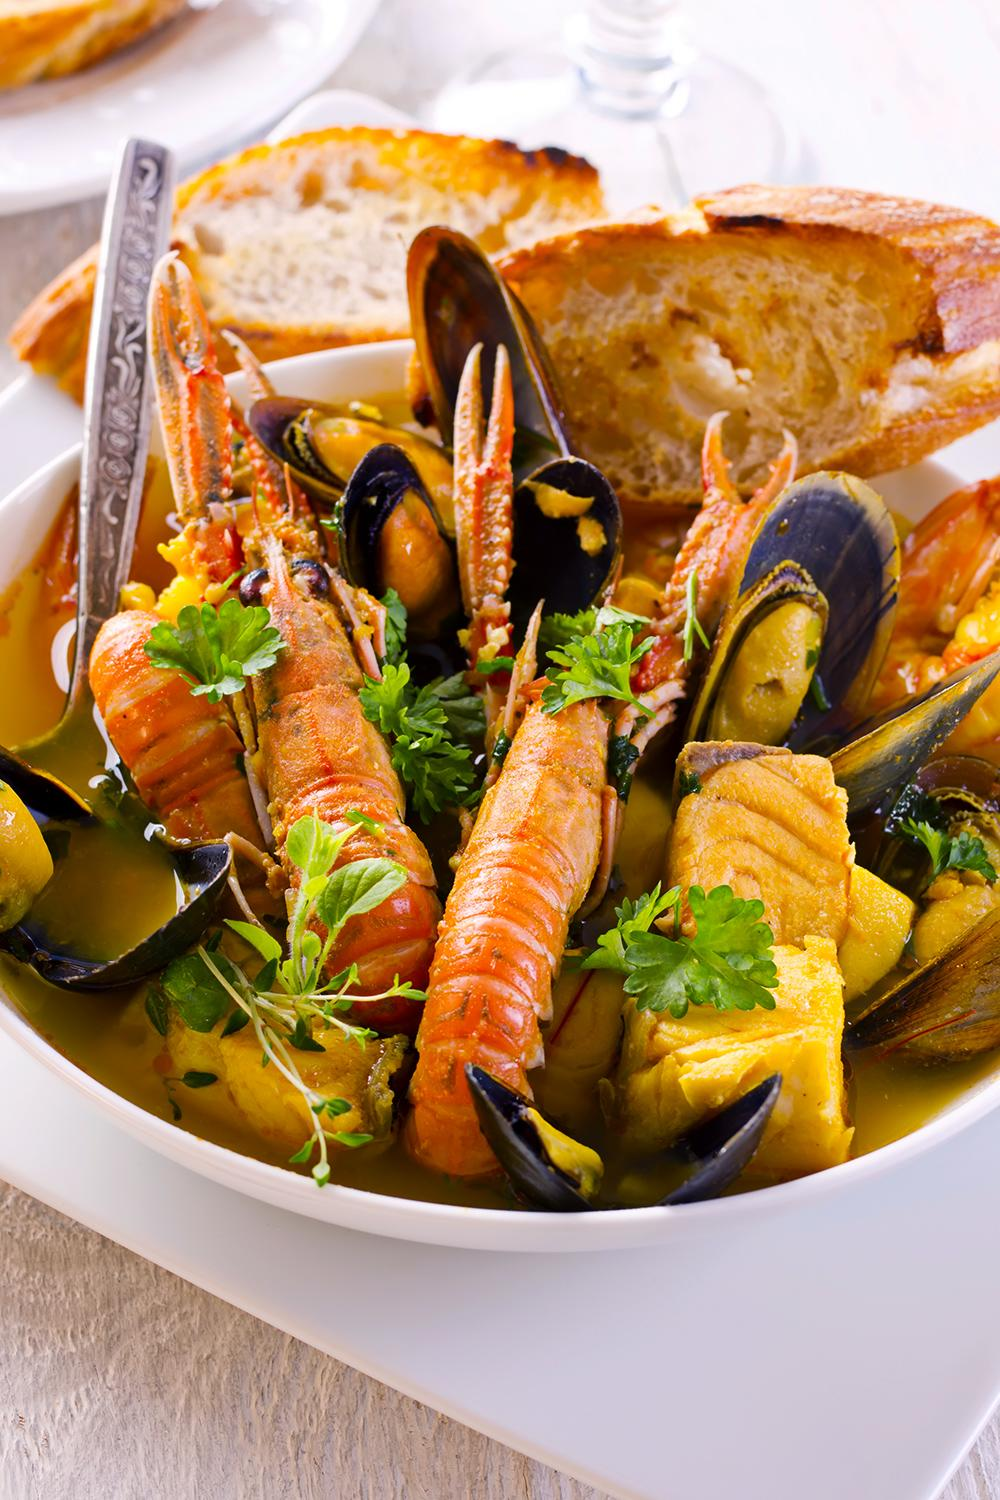 The 16 Regional Dishes That Define French Cuisine